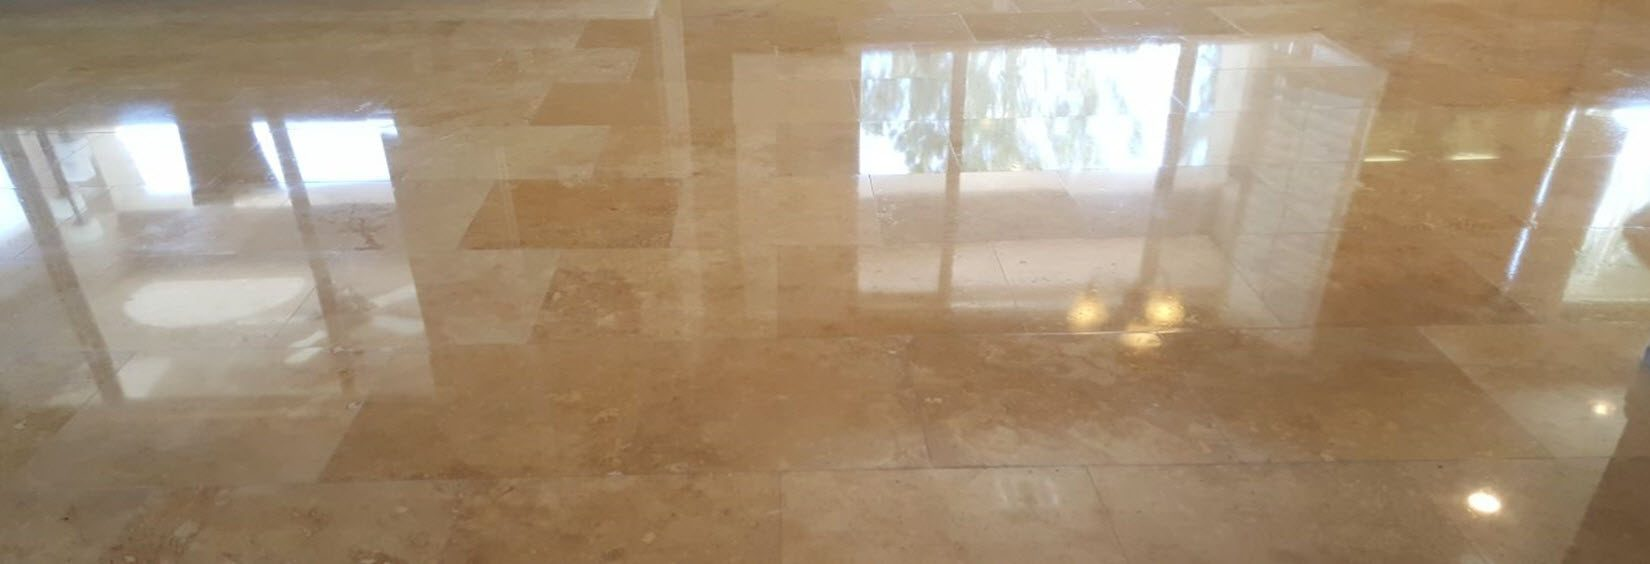 Las vegas floor restoration las vegas nv natural stone las vegas floor restoration las vegas nv natural stone refinishing ceramic tile grout cleaning travertine polishing marble sealing granite honing dailygadgetfo Gallery